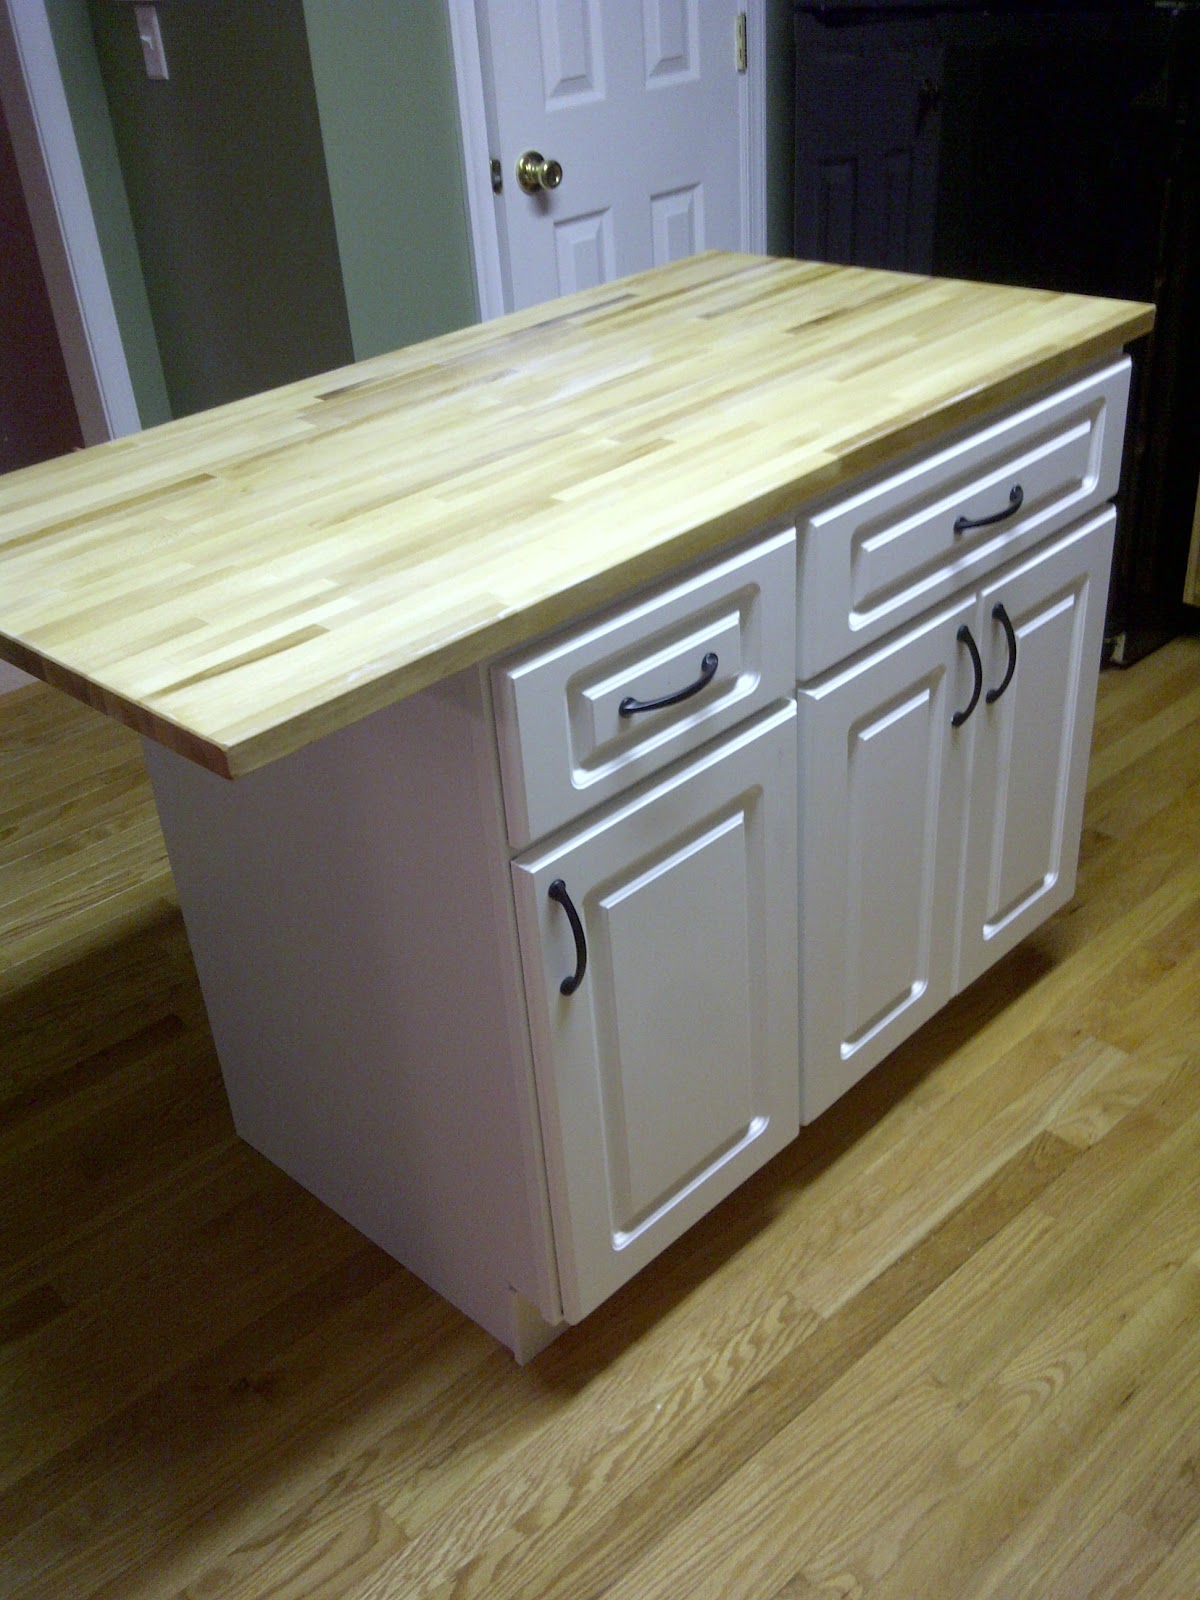 Misadventures in DIY:: Kitchen Island: Part 1